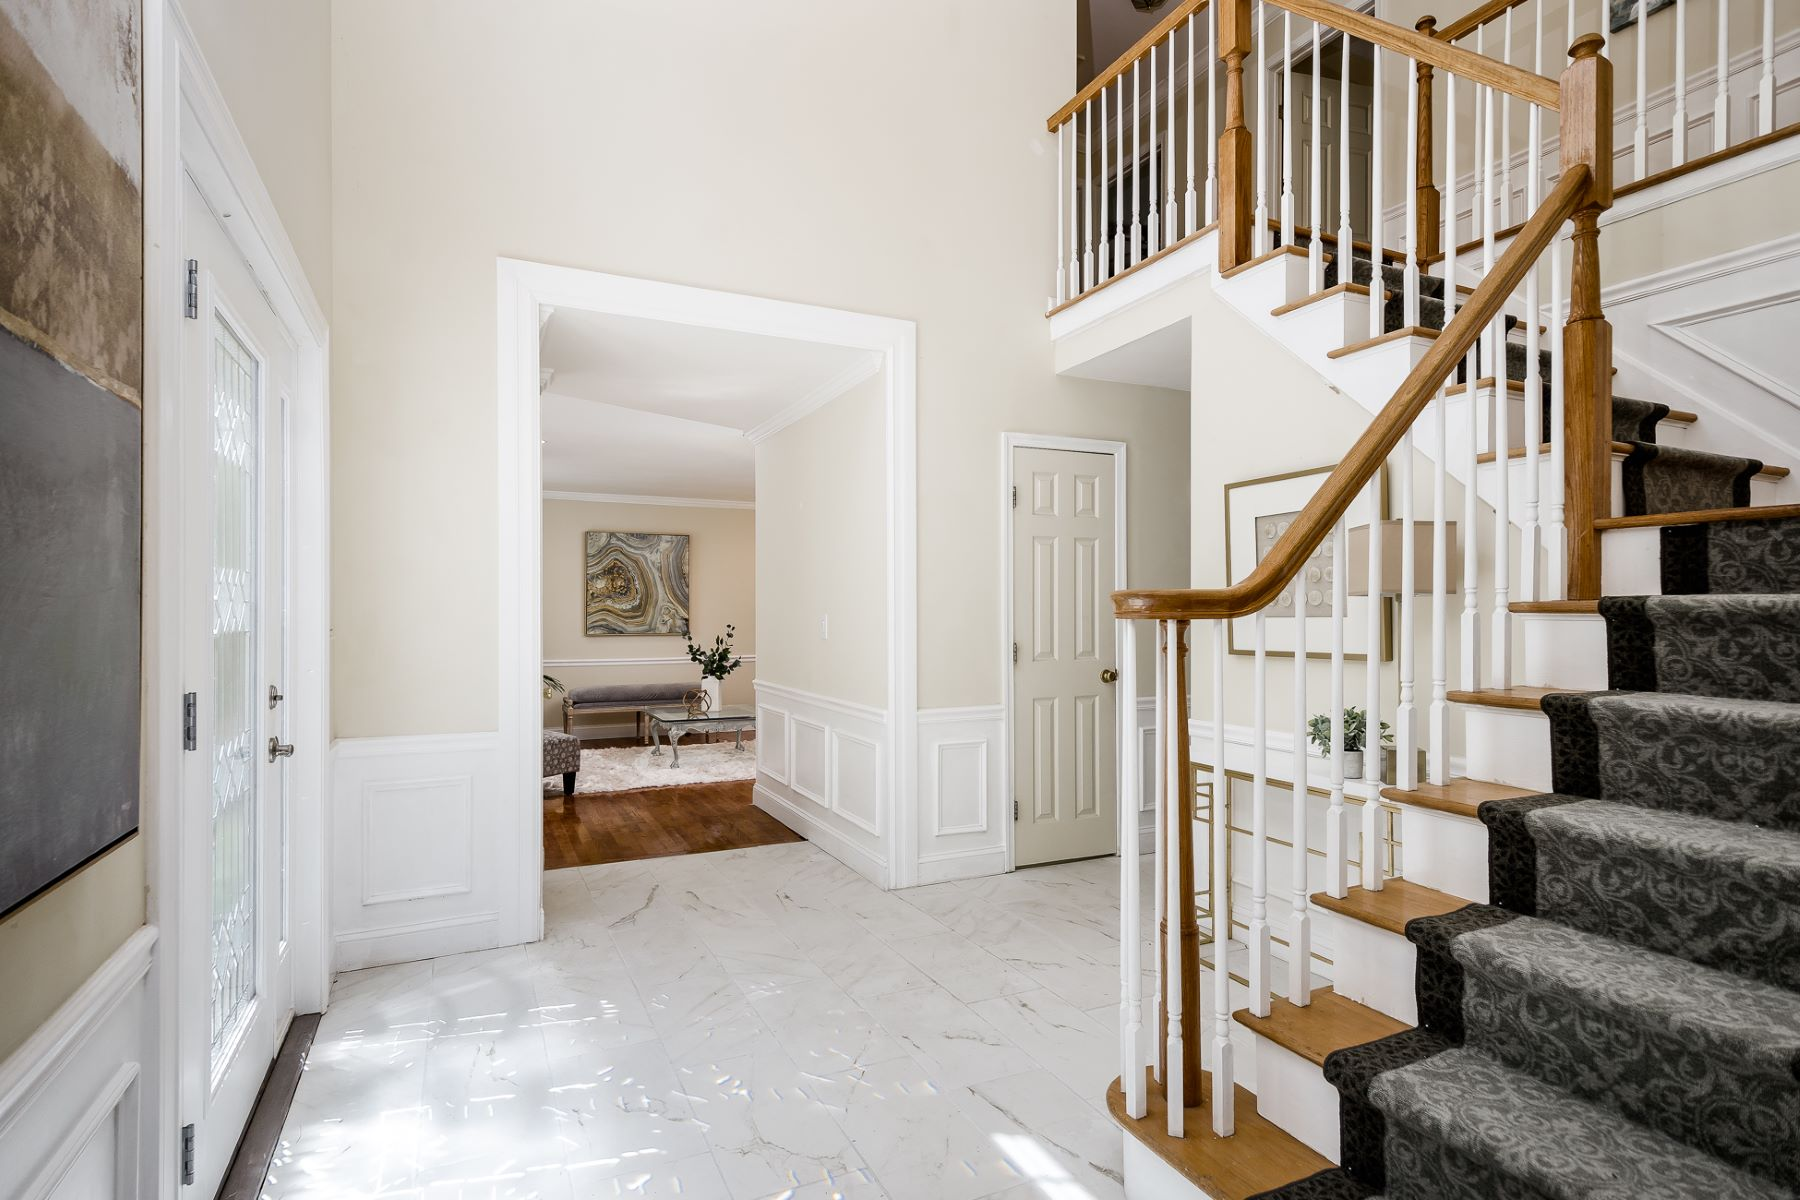 Additional photo for property listing at Elegant, Light-Filled Versatility in Heatherfield 32 Ginnie Lane, West Windsor, New Jersey 08550 United States